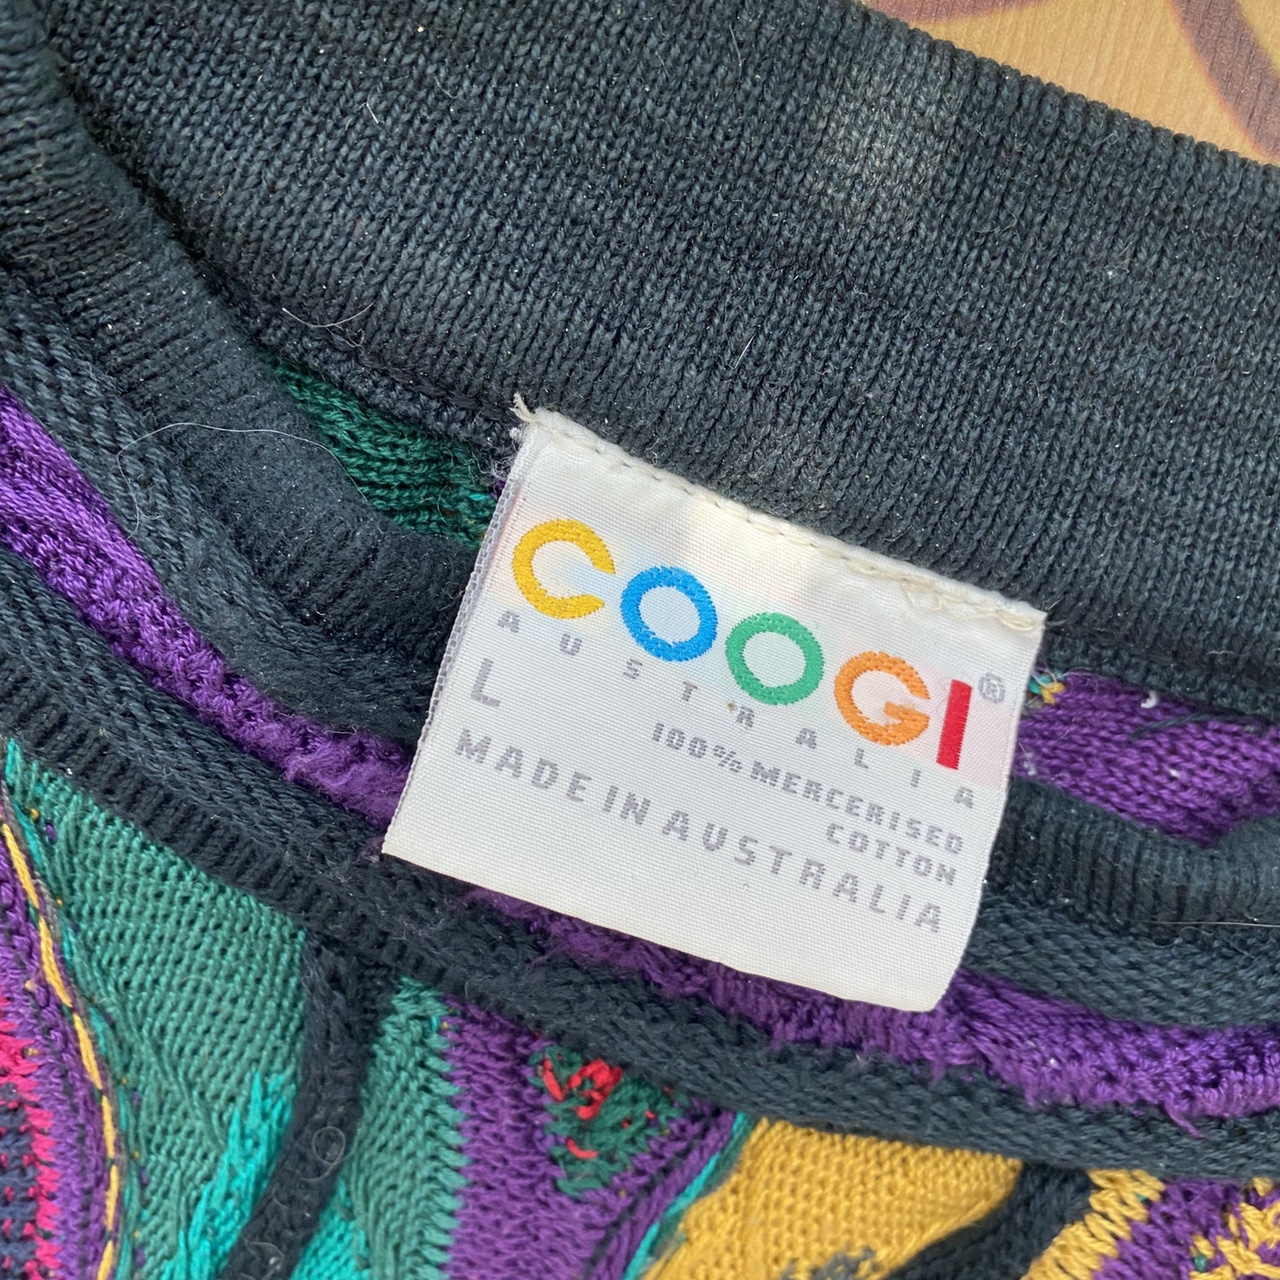 Product Image 2 - Coogi sweater with unique and